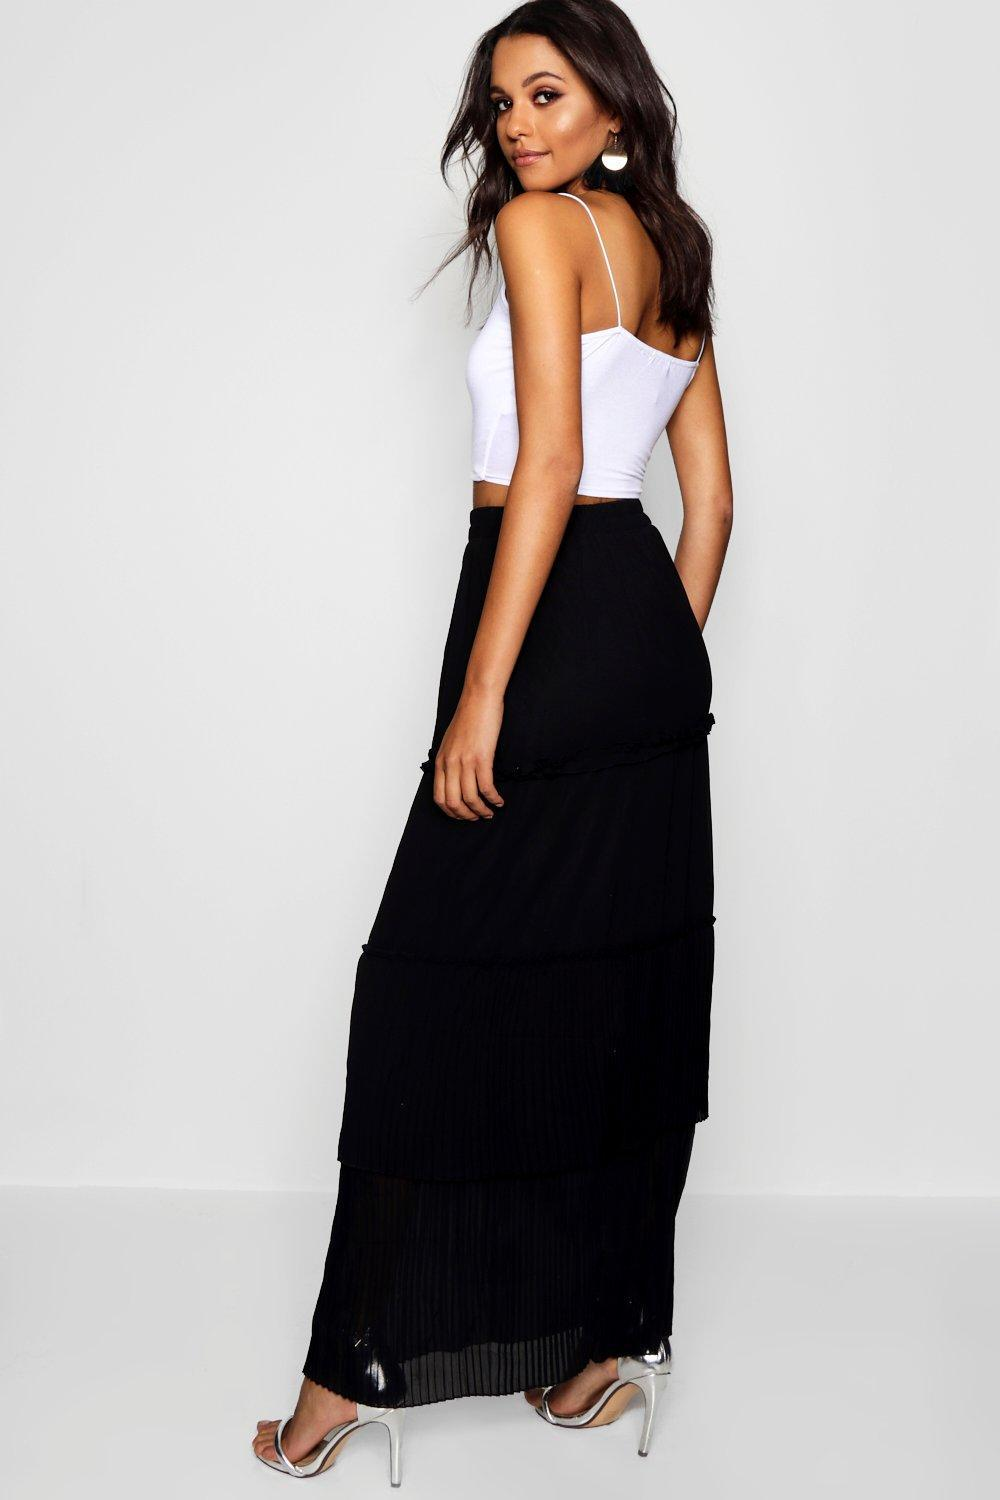 471dd5524 Gallery. Previously sold at: Boohoo · Women's Pleated Skirts